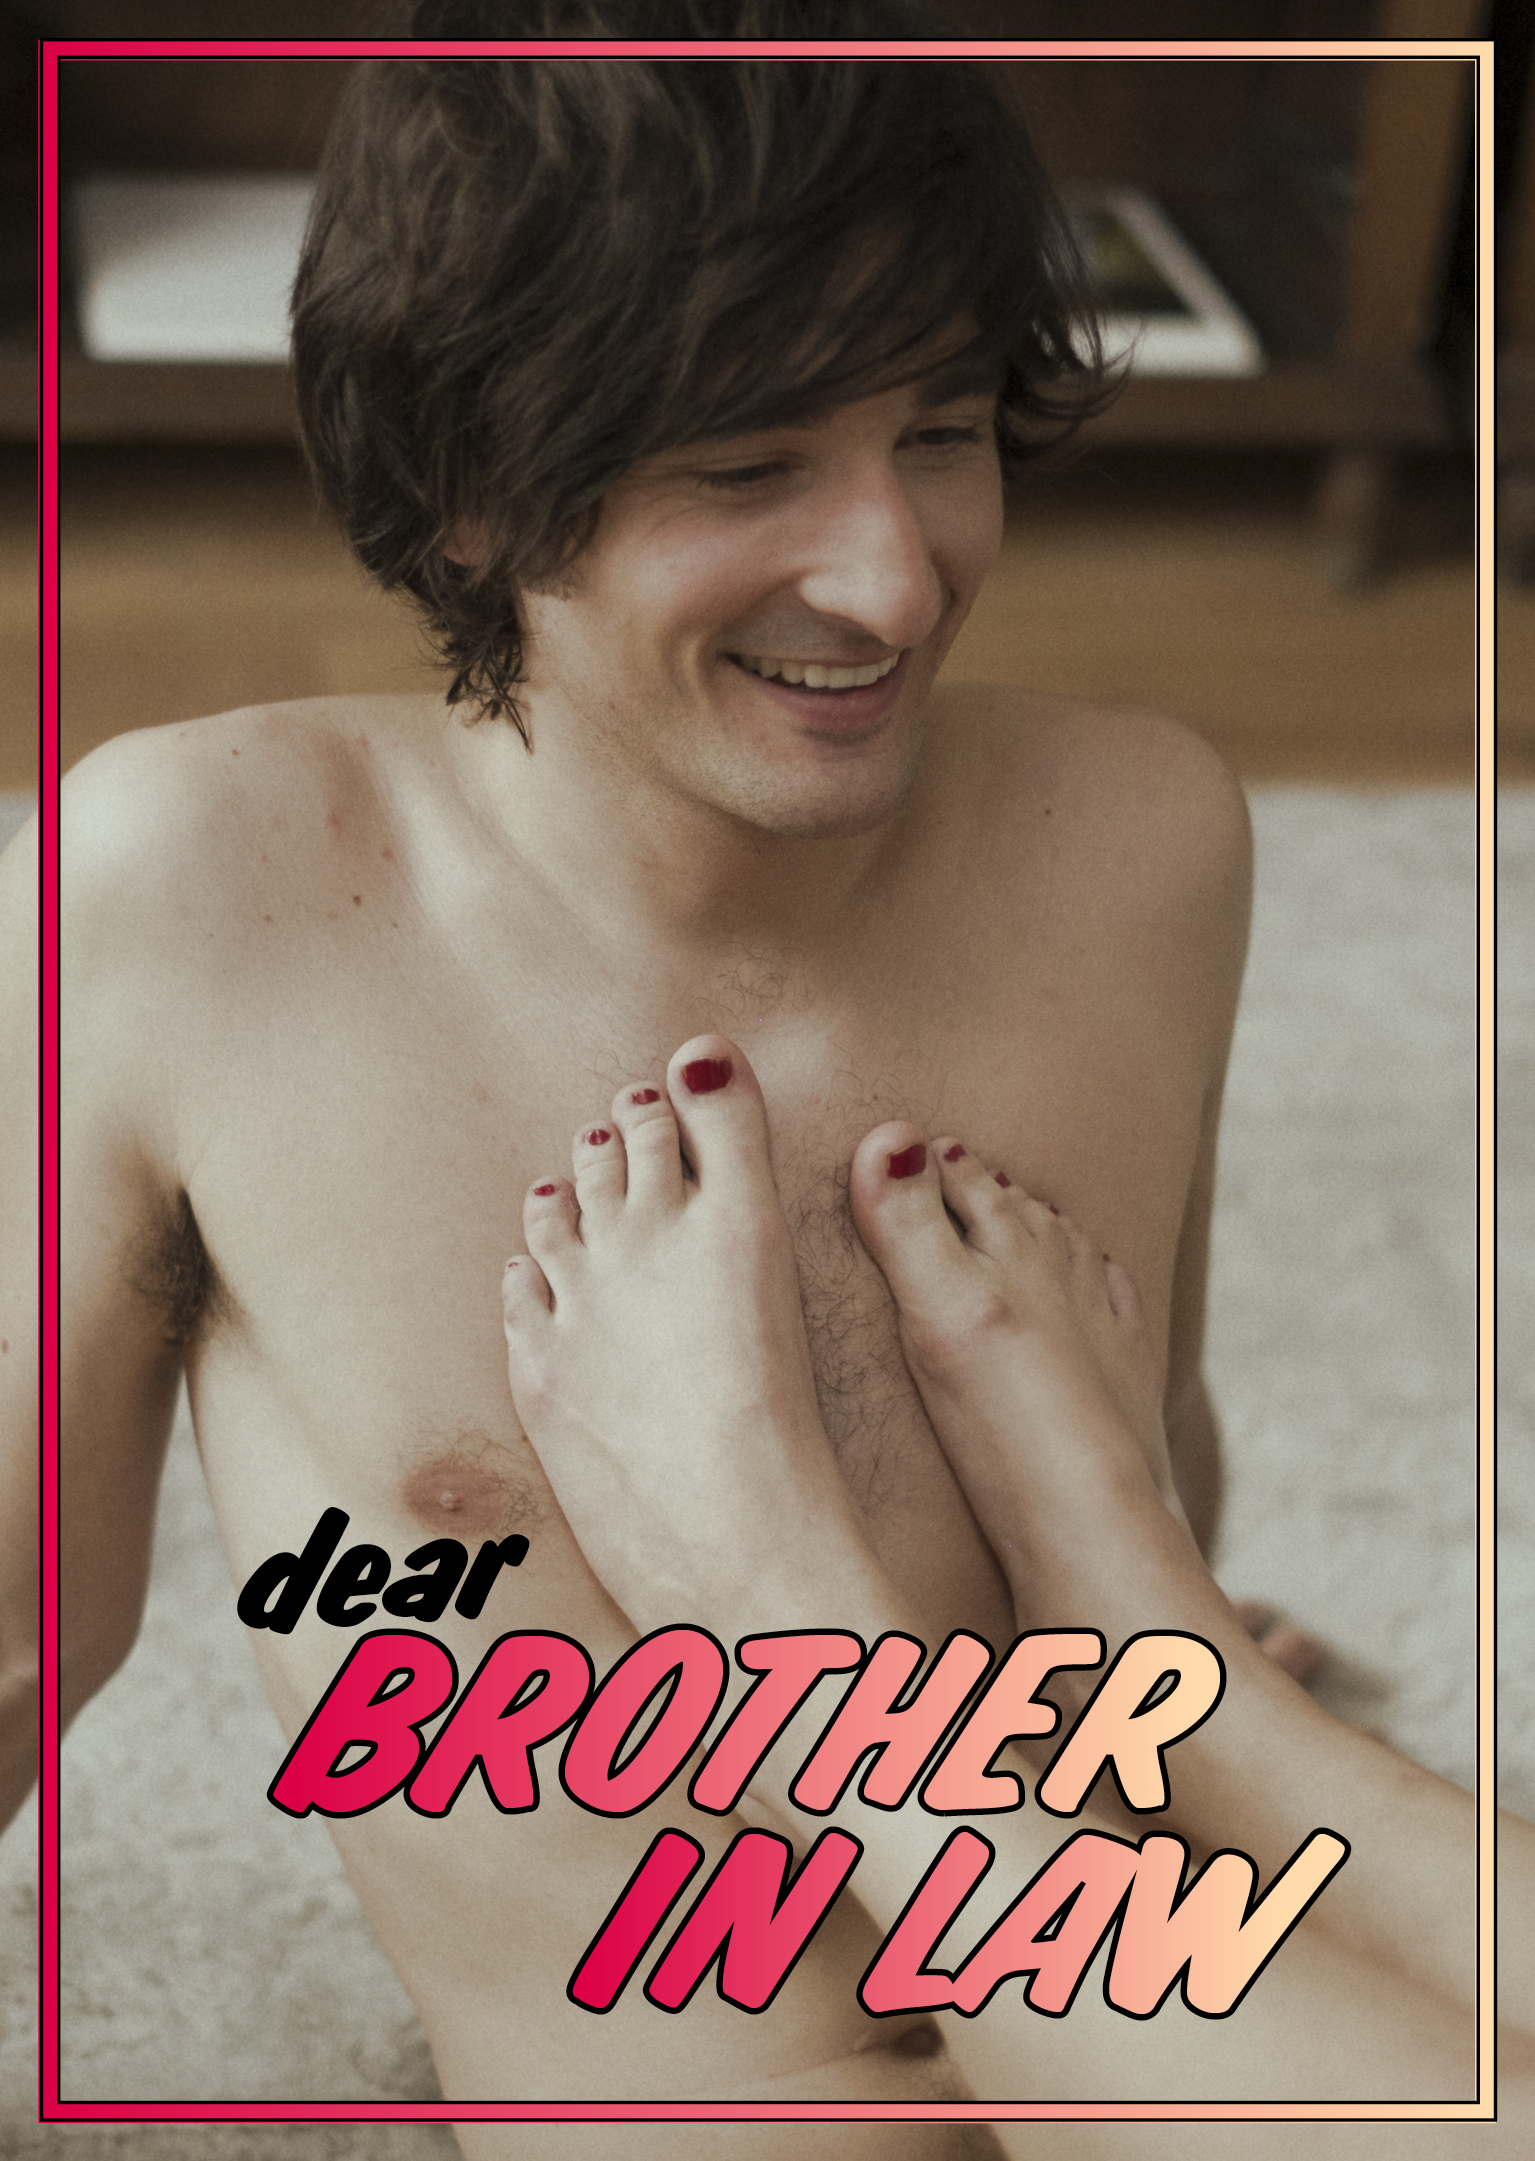 Xconfessions By Erika Lust, Dear Brother In Law